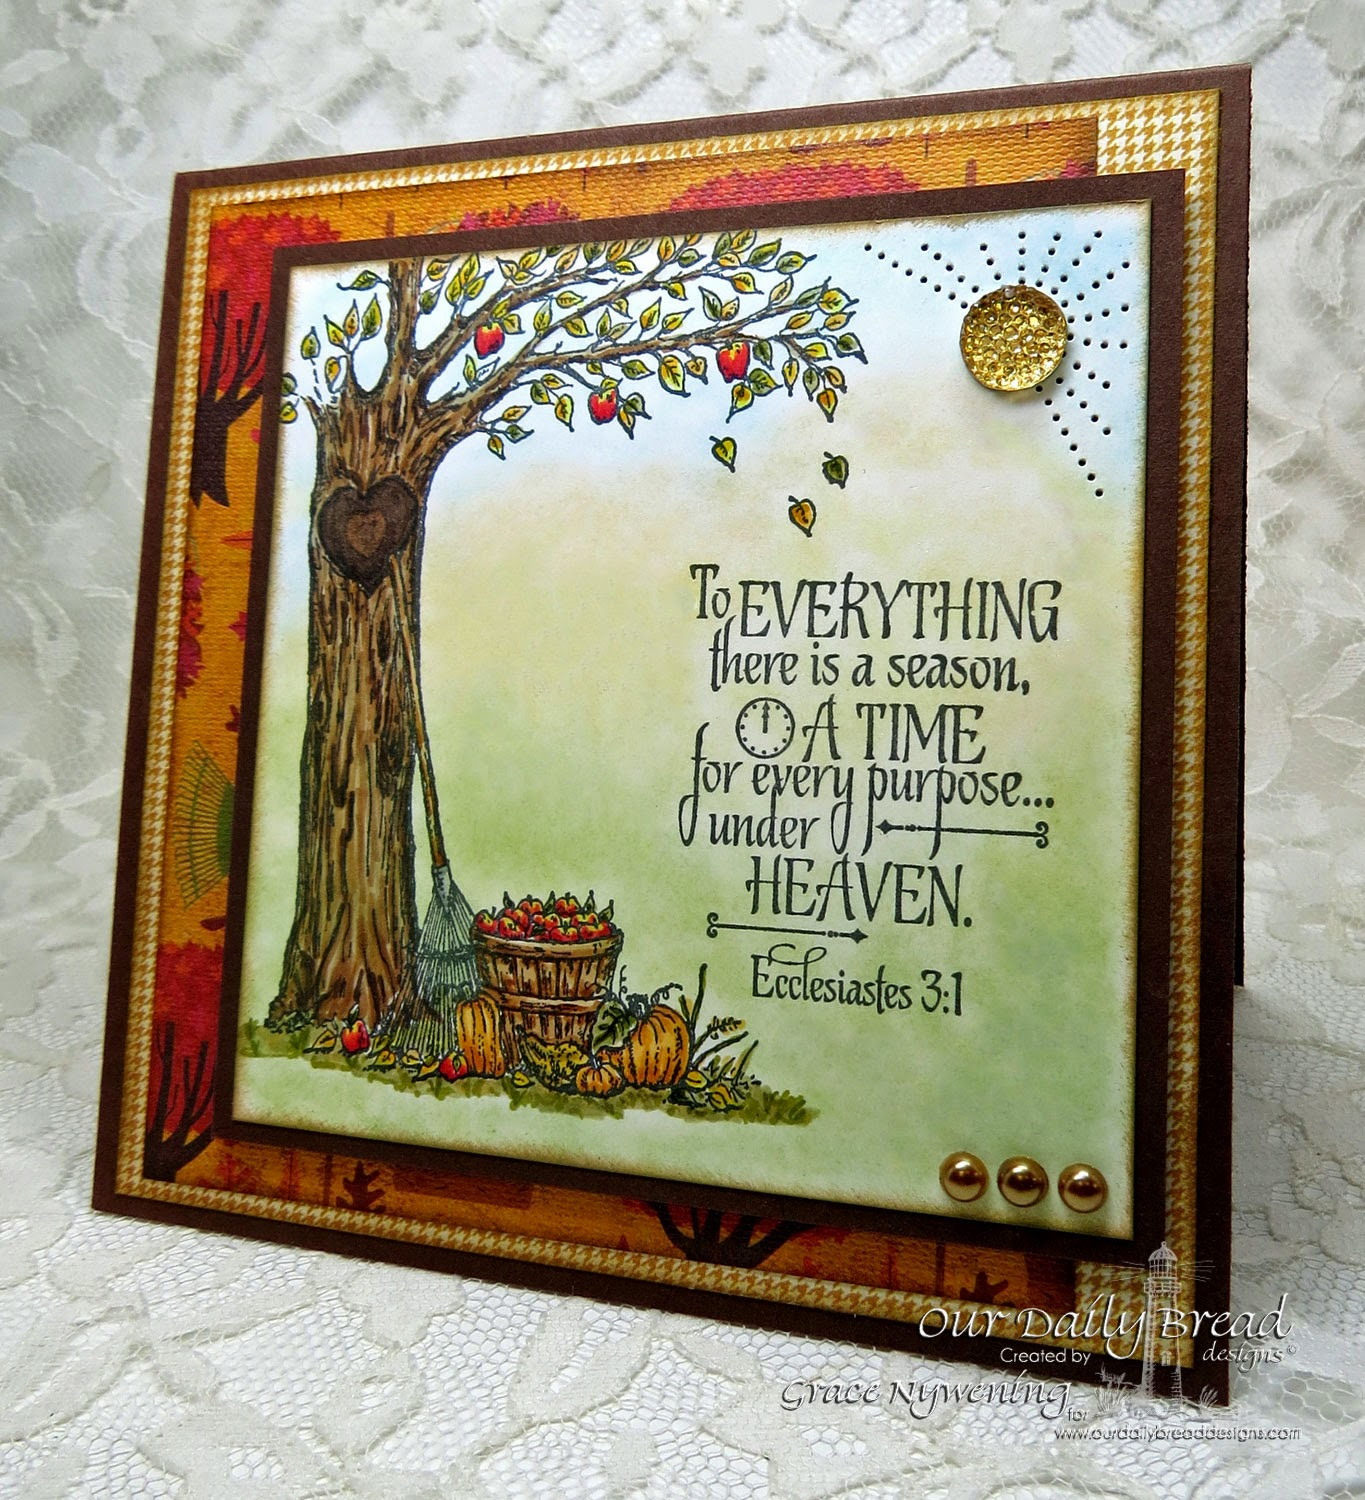 ODBD stamps: Autumn Tree, God's Timing, designed by Grace Nywening